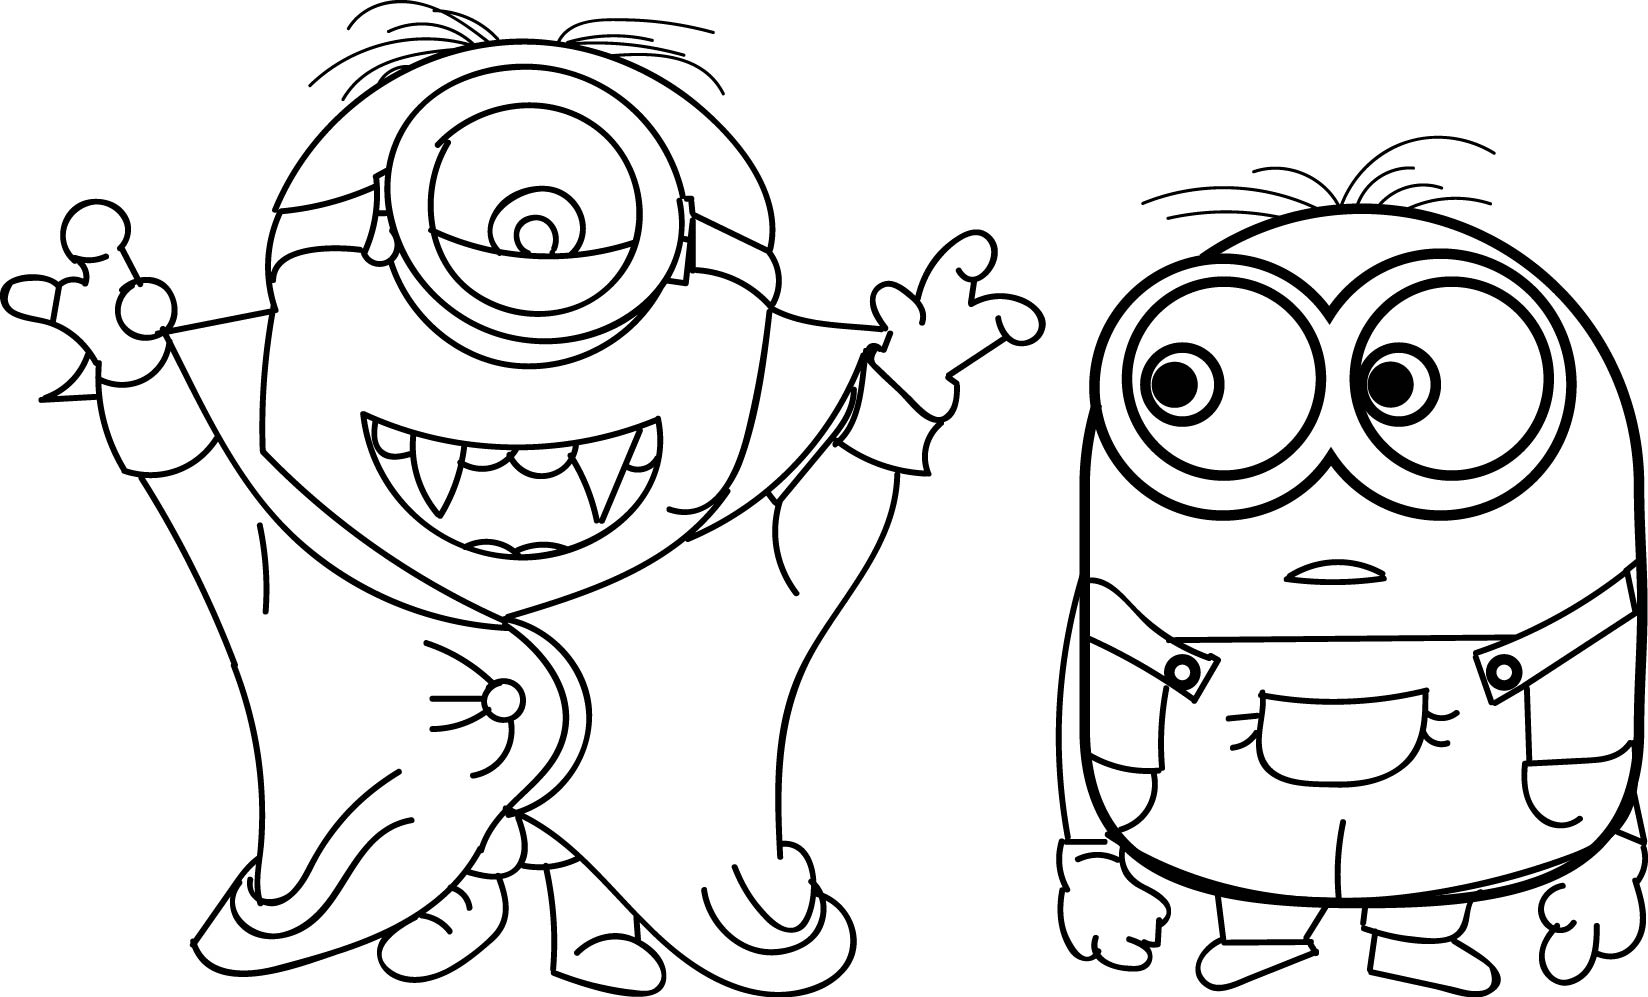 Spongebob rock band coloring pages marching band coloring for Rock band coloring pages